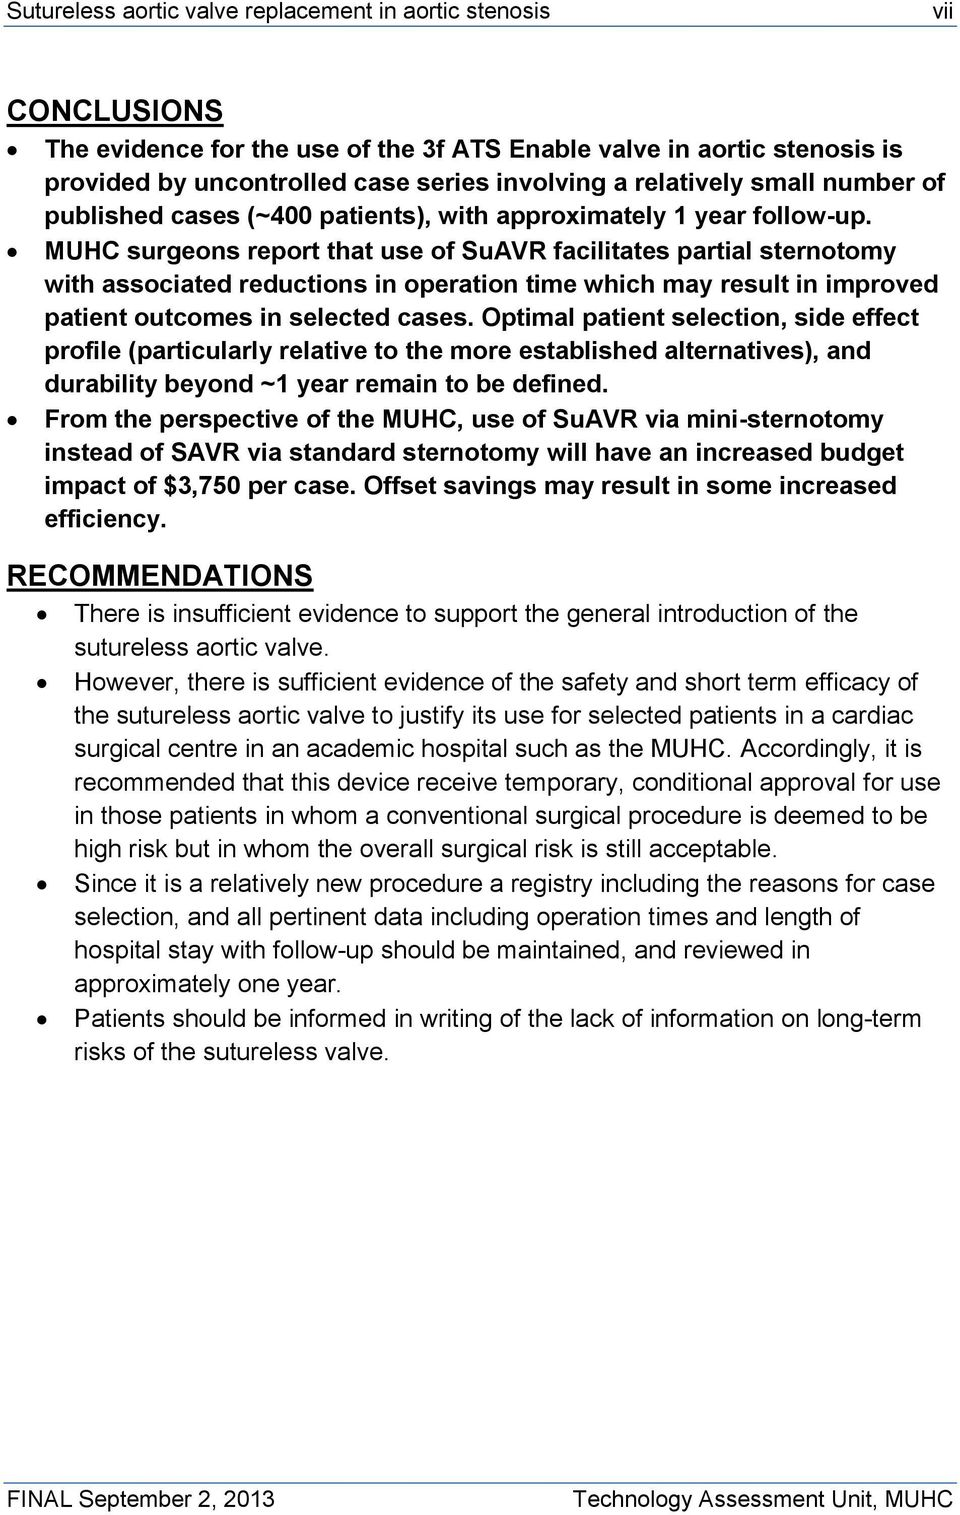 MUHC surgeons report that use of SuAVR facilitates partial sternotomy with associated reductions in operation time which may result in improved patient outcomes in selected cases.